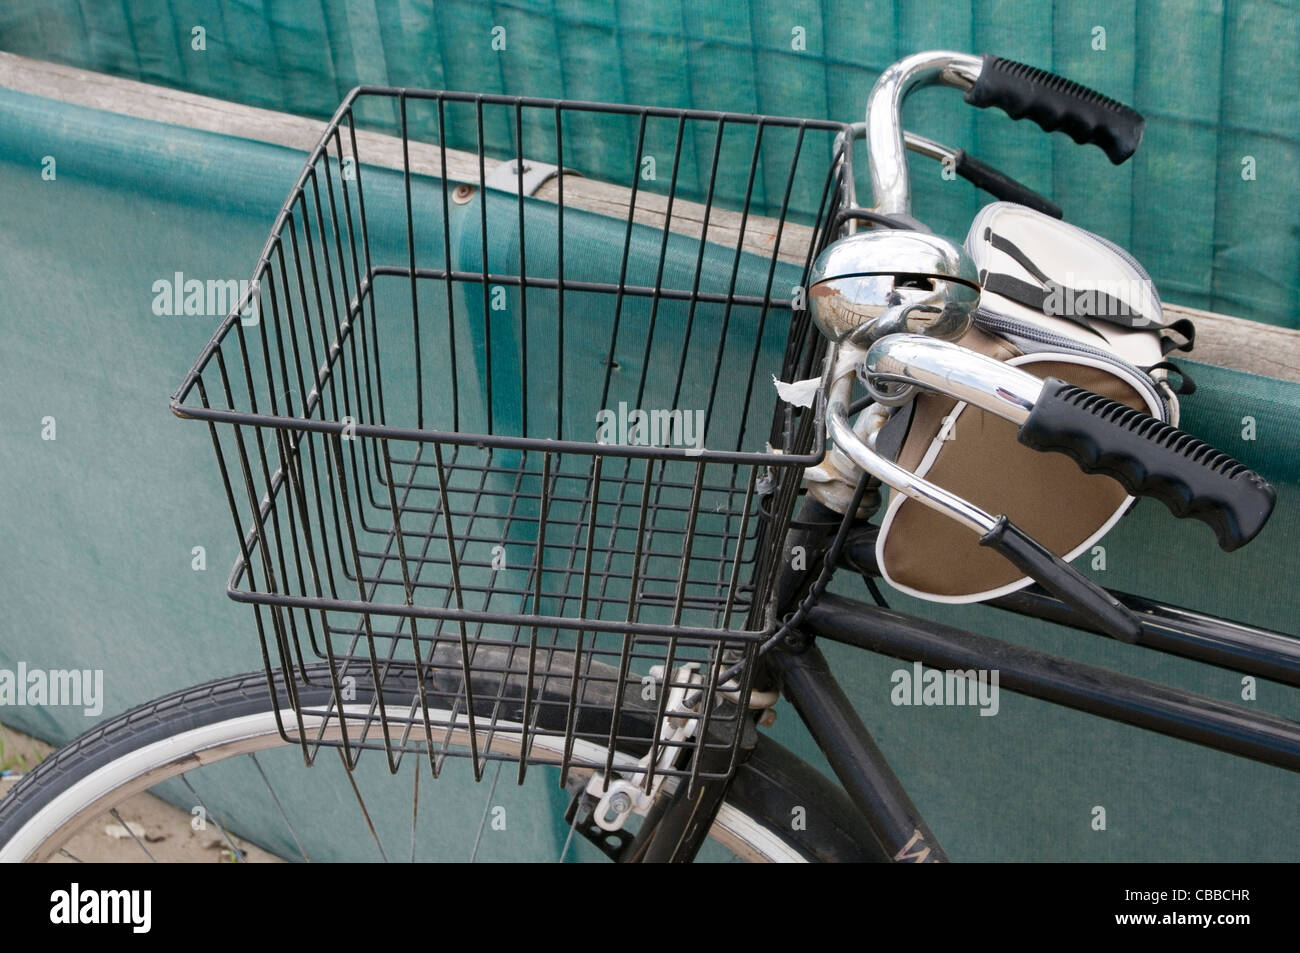 basket bike cycle bikes cycles carrying wire baskets - Stock Image